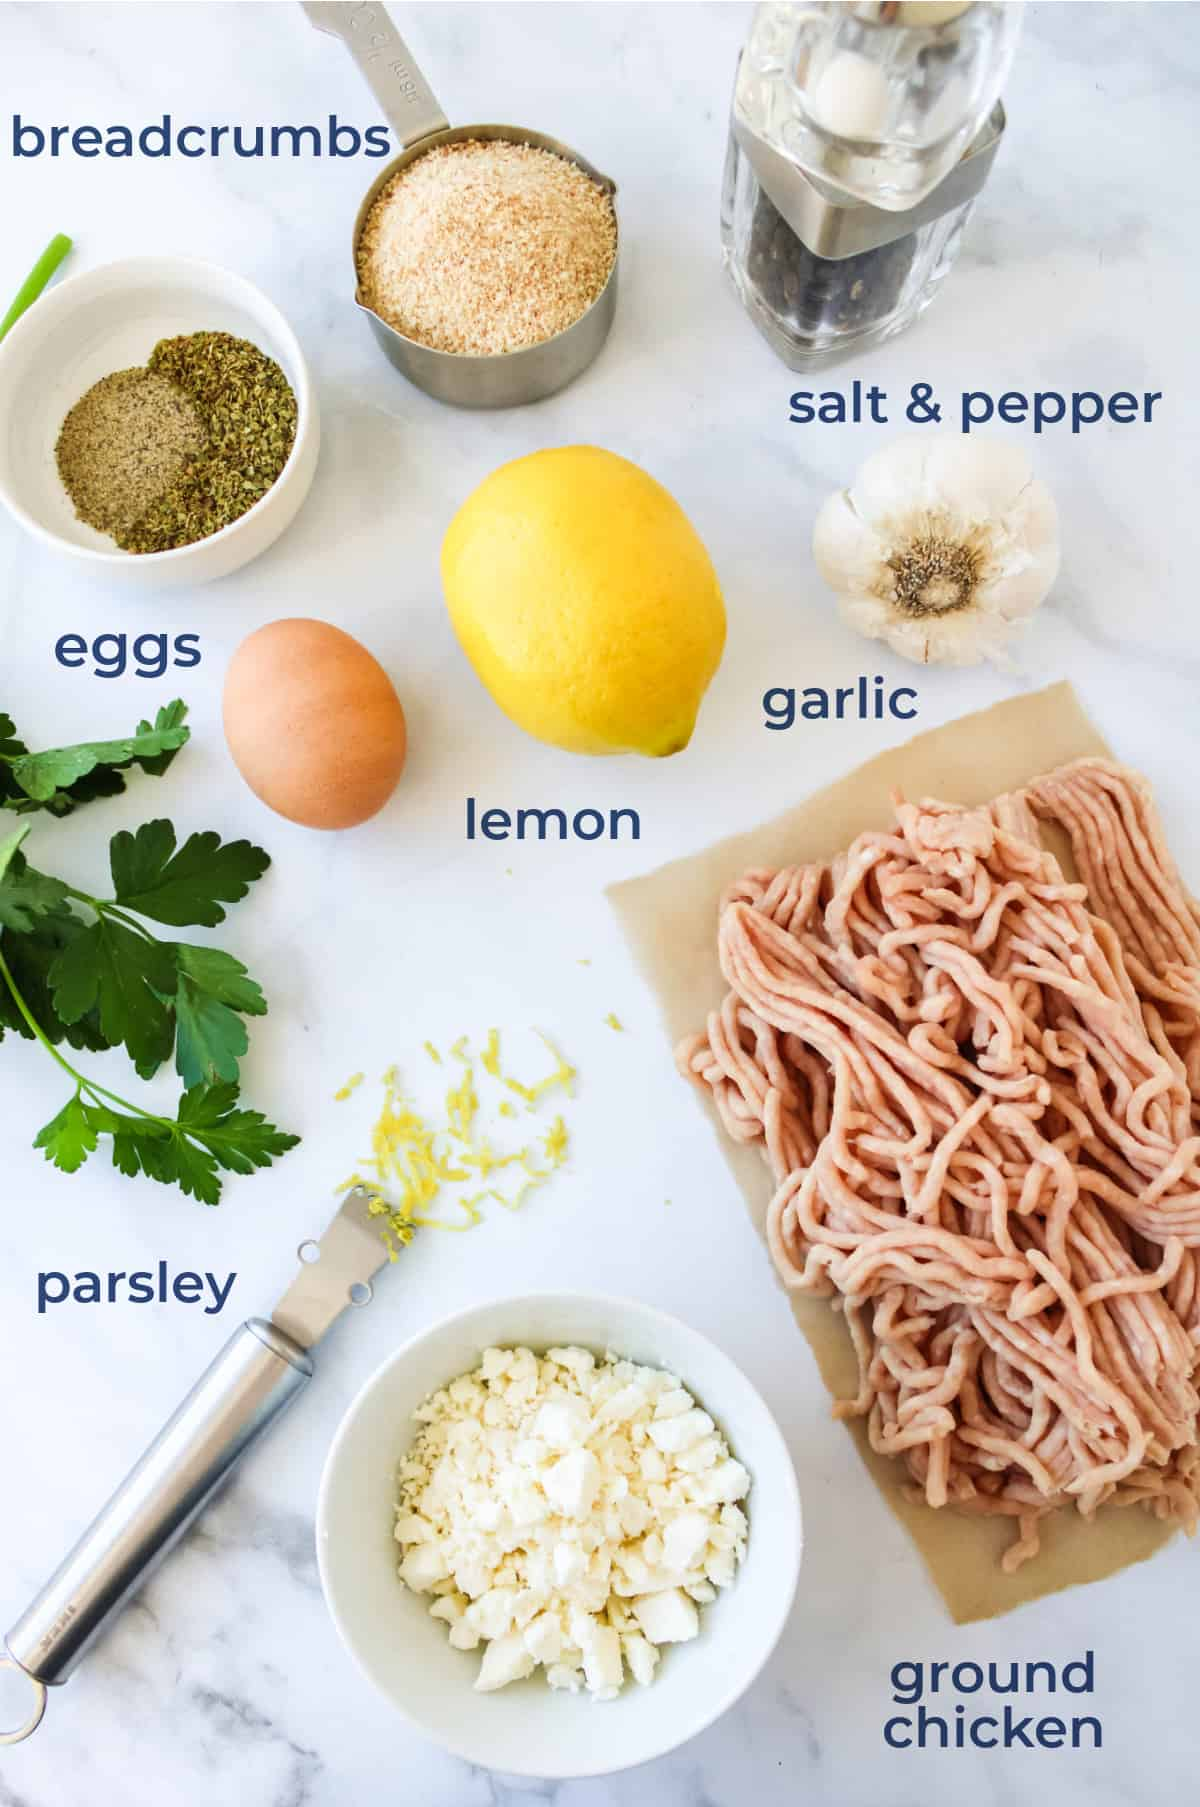 Ingredients laid out for greek chicken meatballs - chicken, feta, egg, lemon, herbs, breadcrumbs